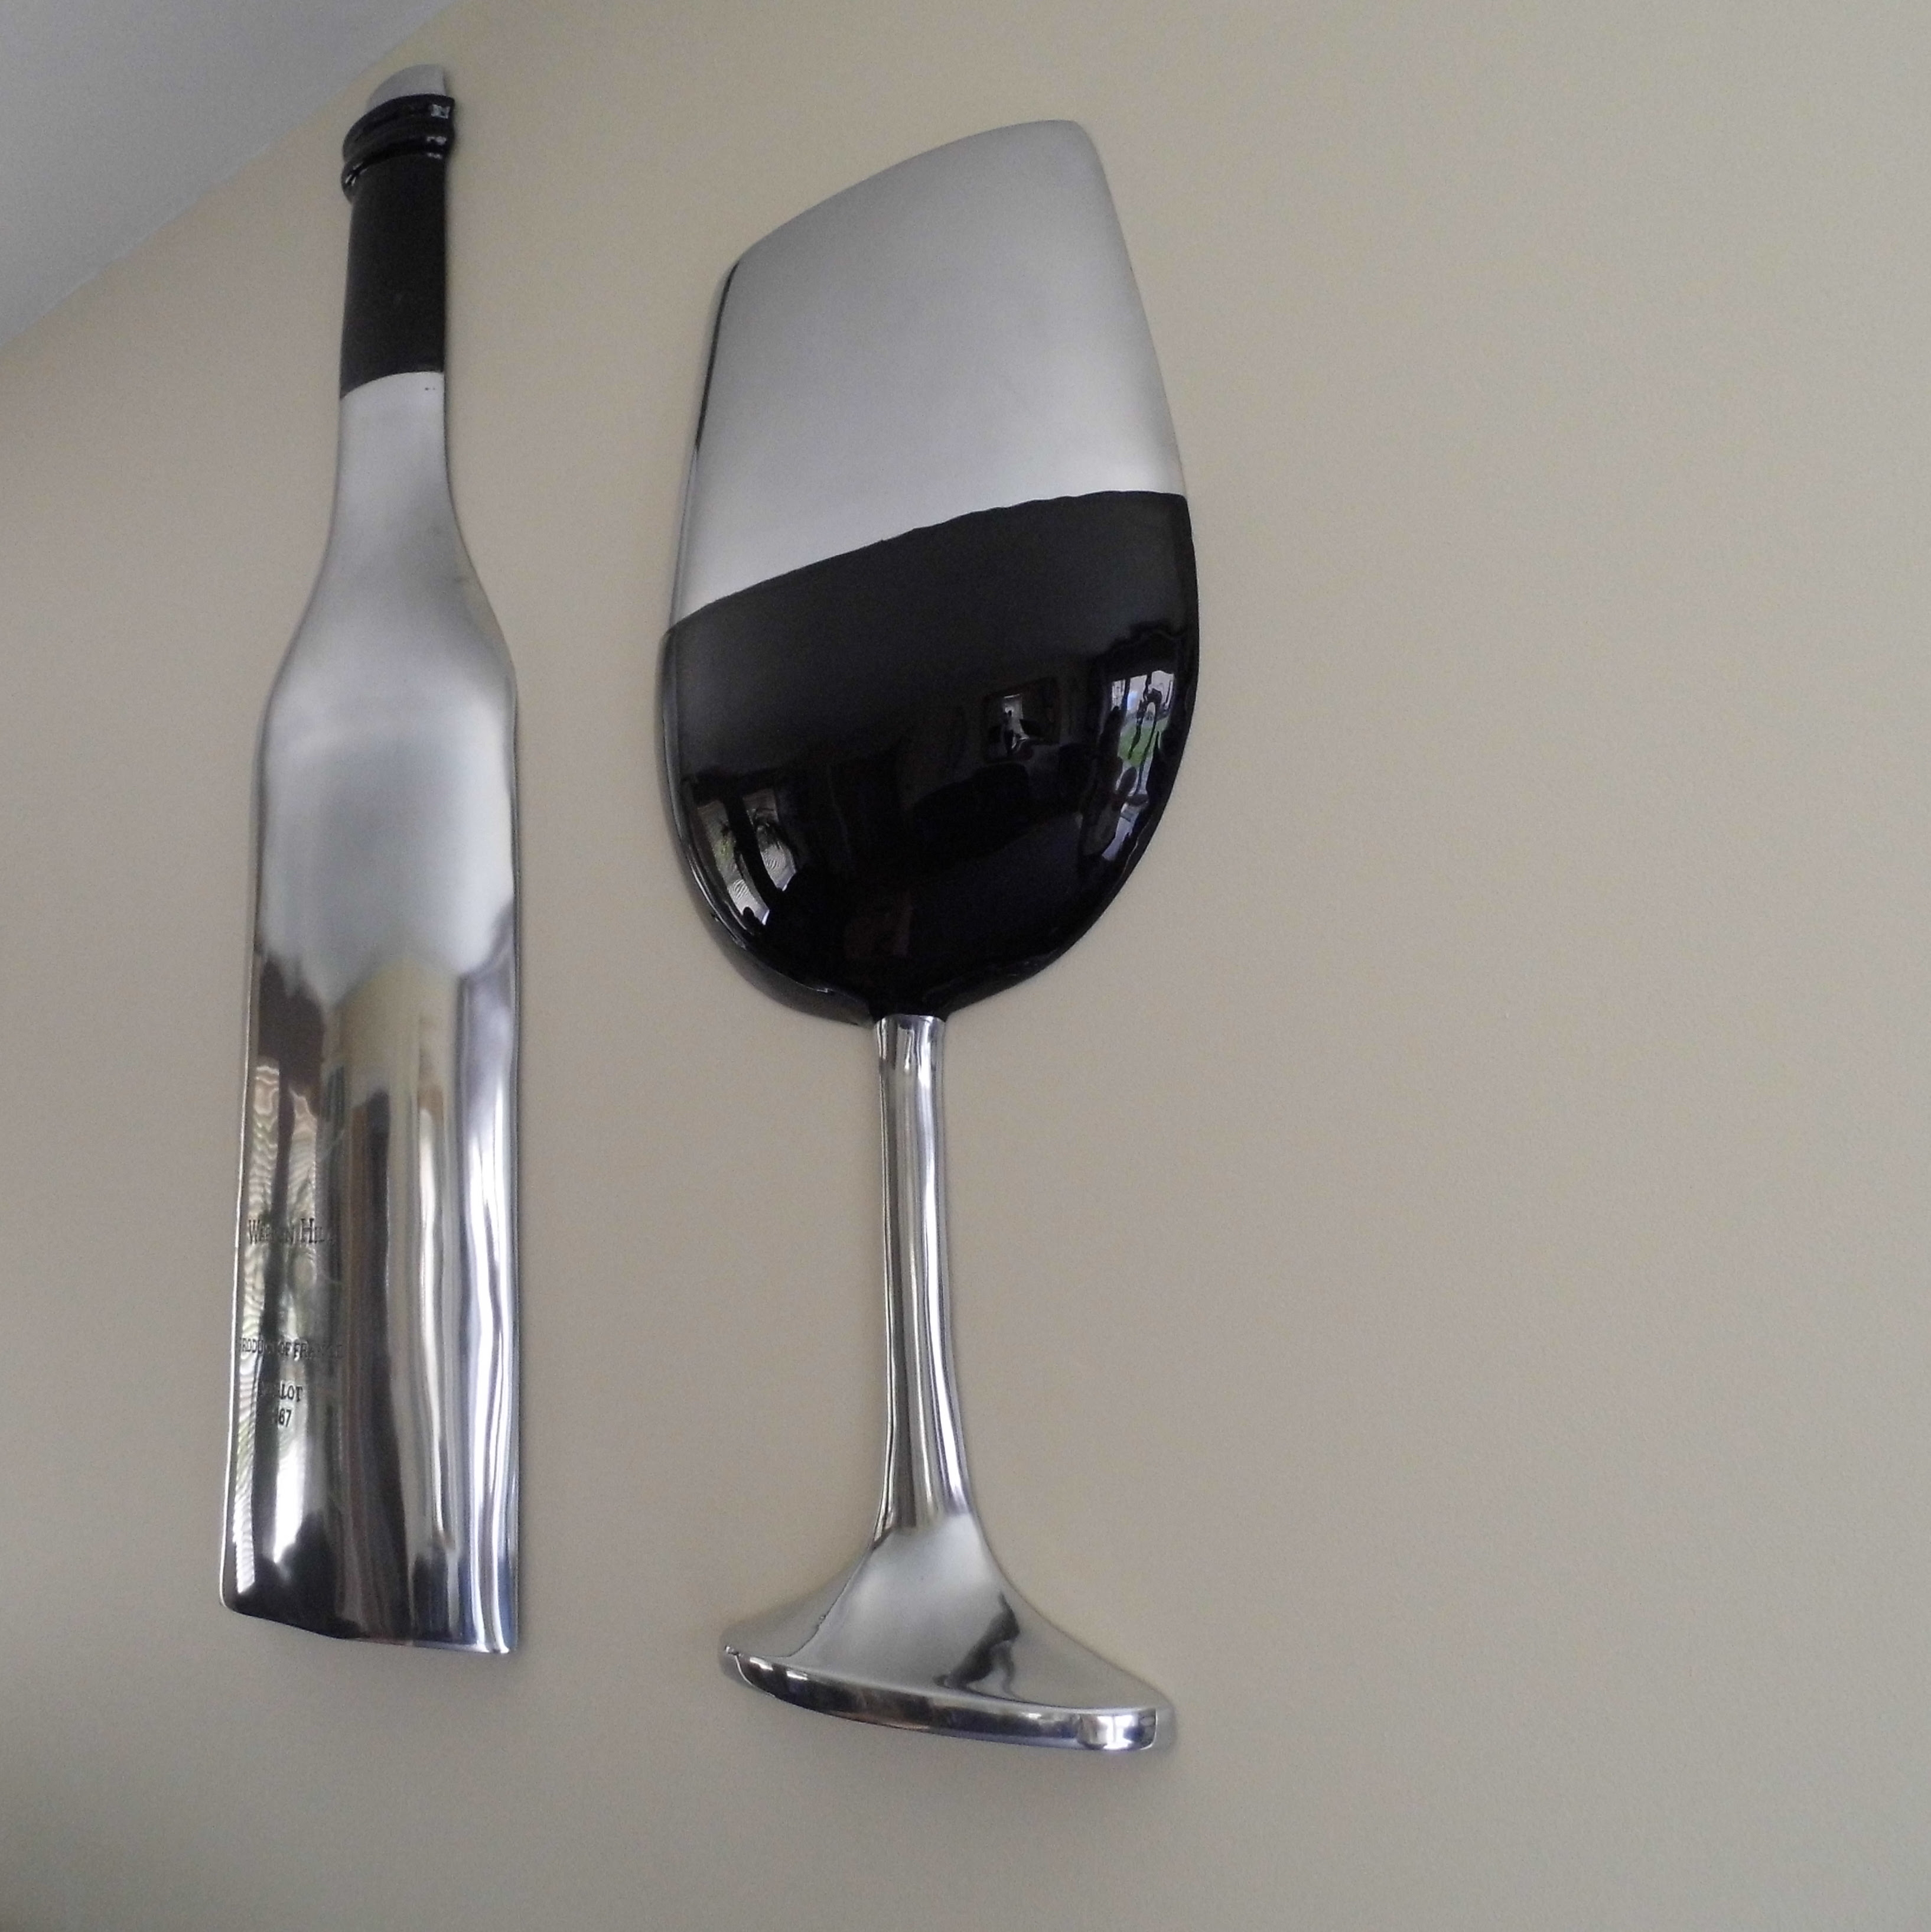 Bottle and Glass on the wall